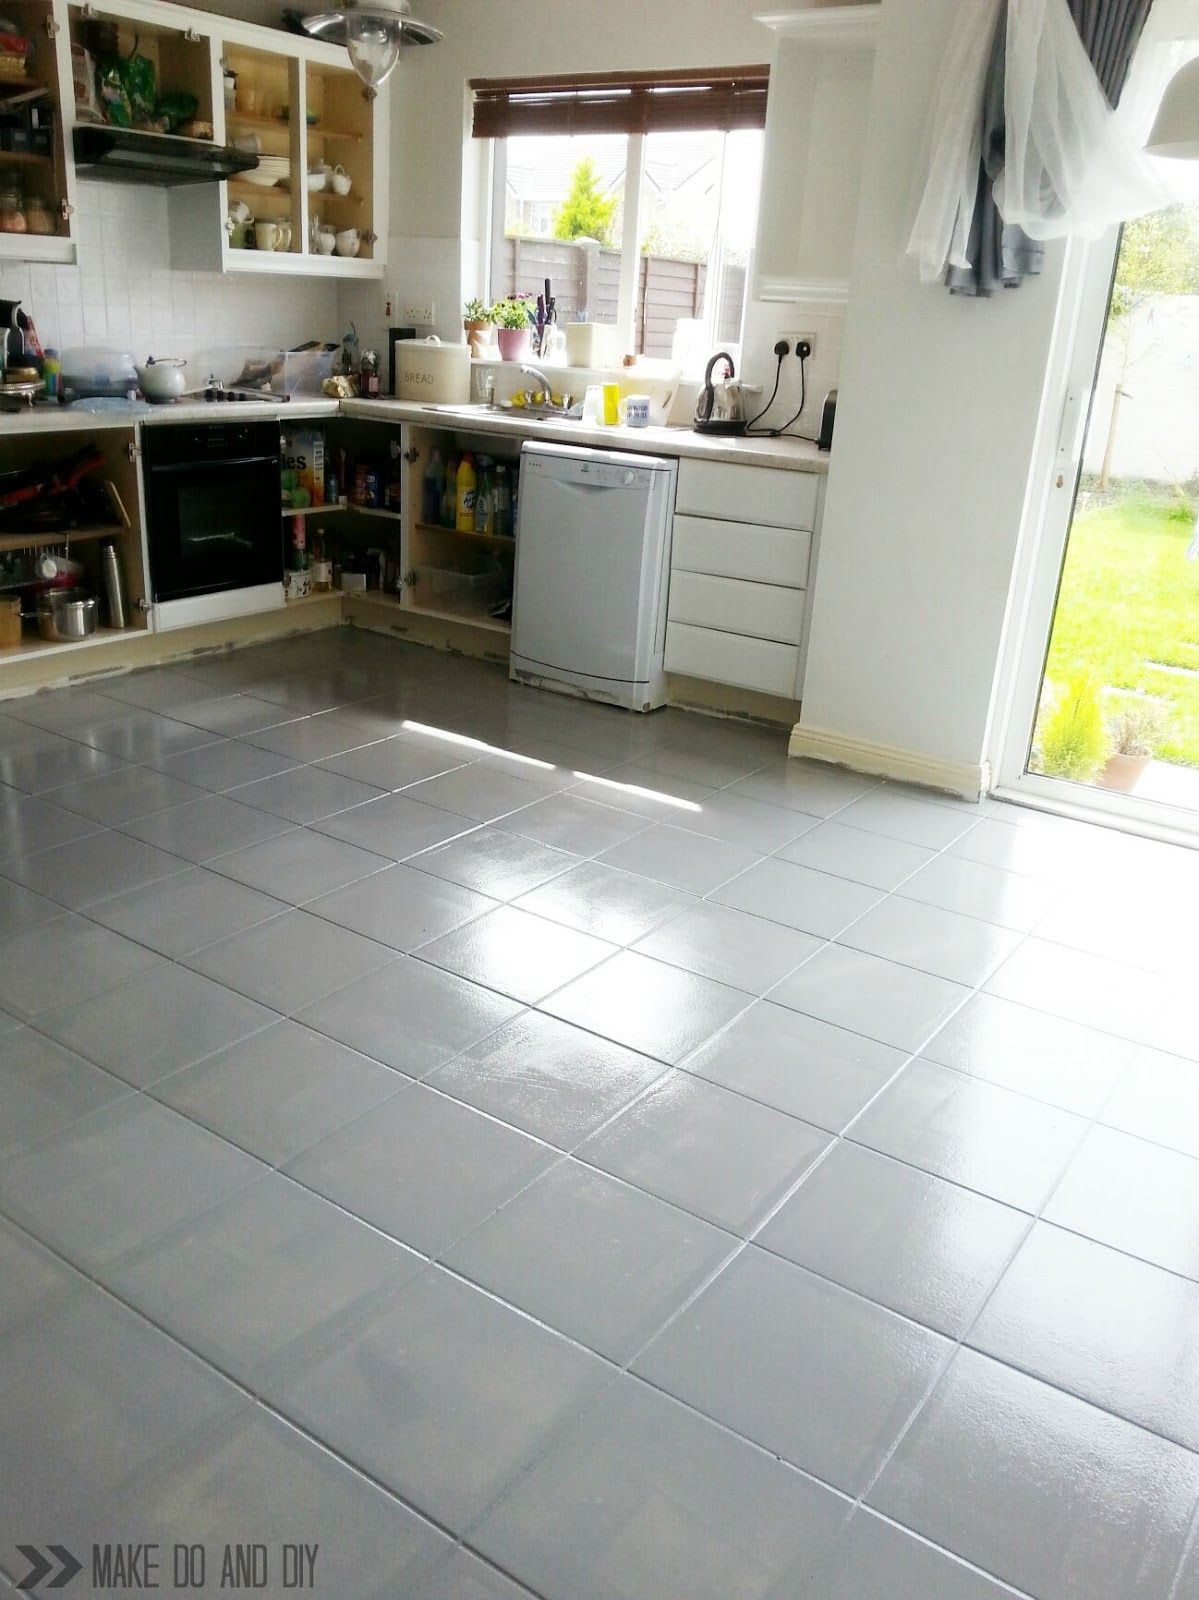 How to paint a tile floor and what you should think about before how to paint a tile floor and what you should think about before you do dailygadgetfo Choice Image